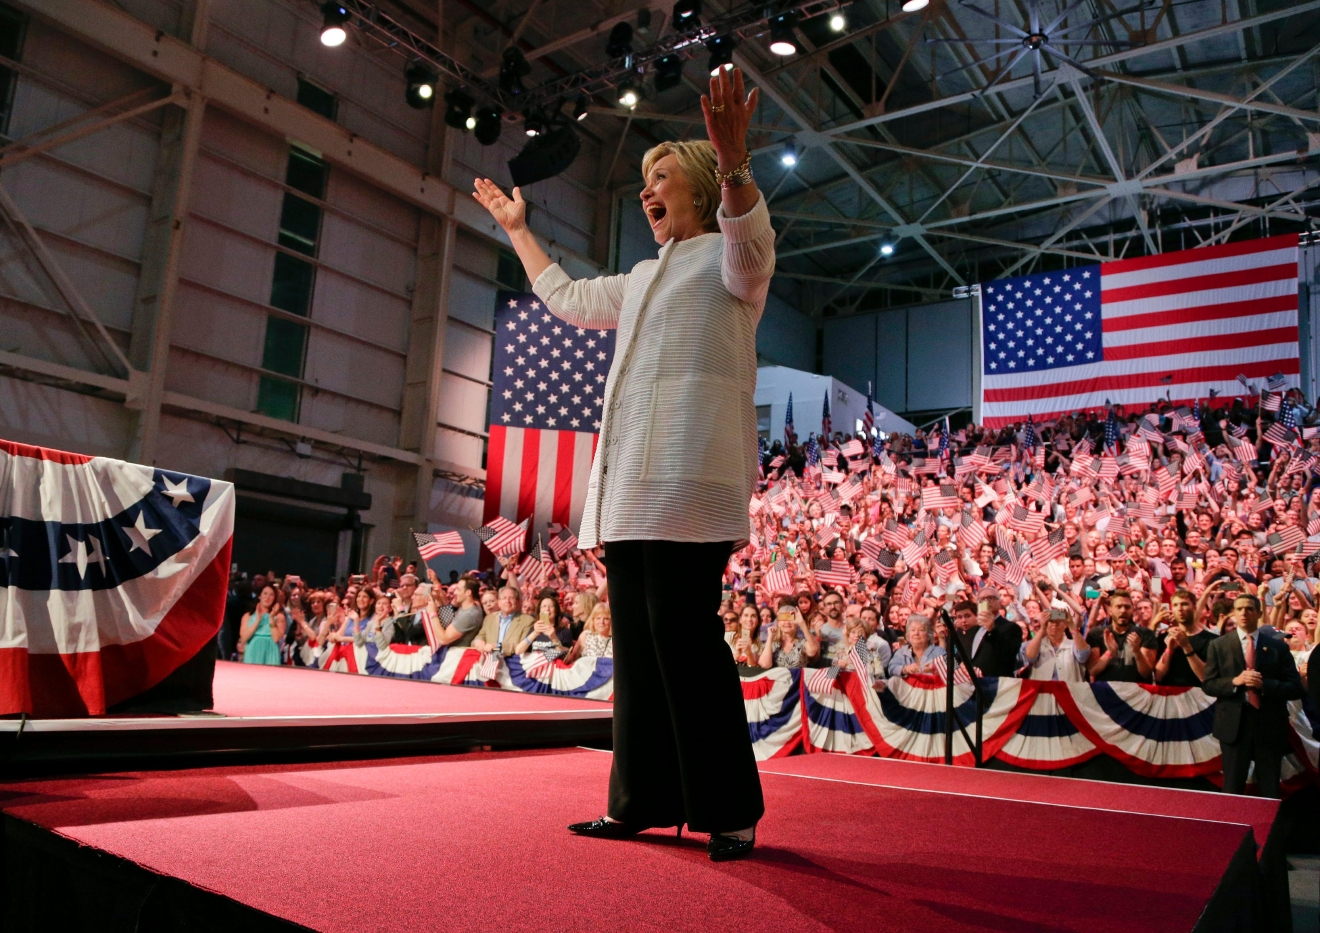 Democratic presidential candidate Hillary Clinton reacts to supporters during a presidential primary election night rally, Tuesday, June 7, 2016, in New York.  (AP Photo/Julie Jacobson)